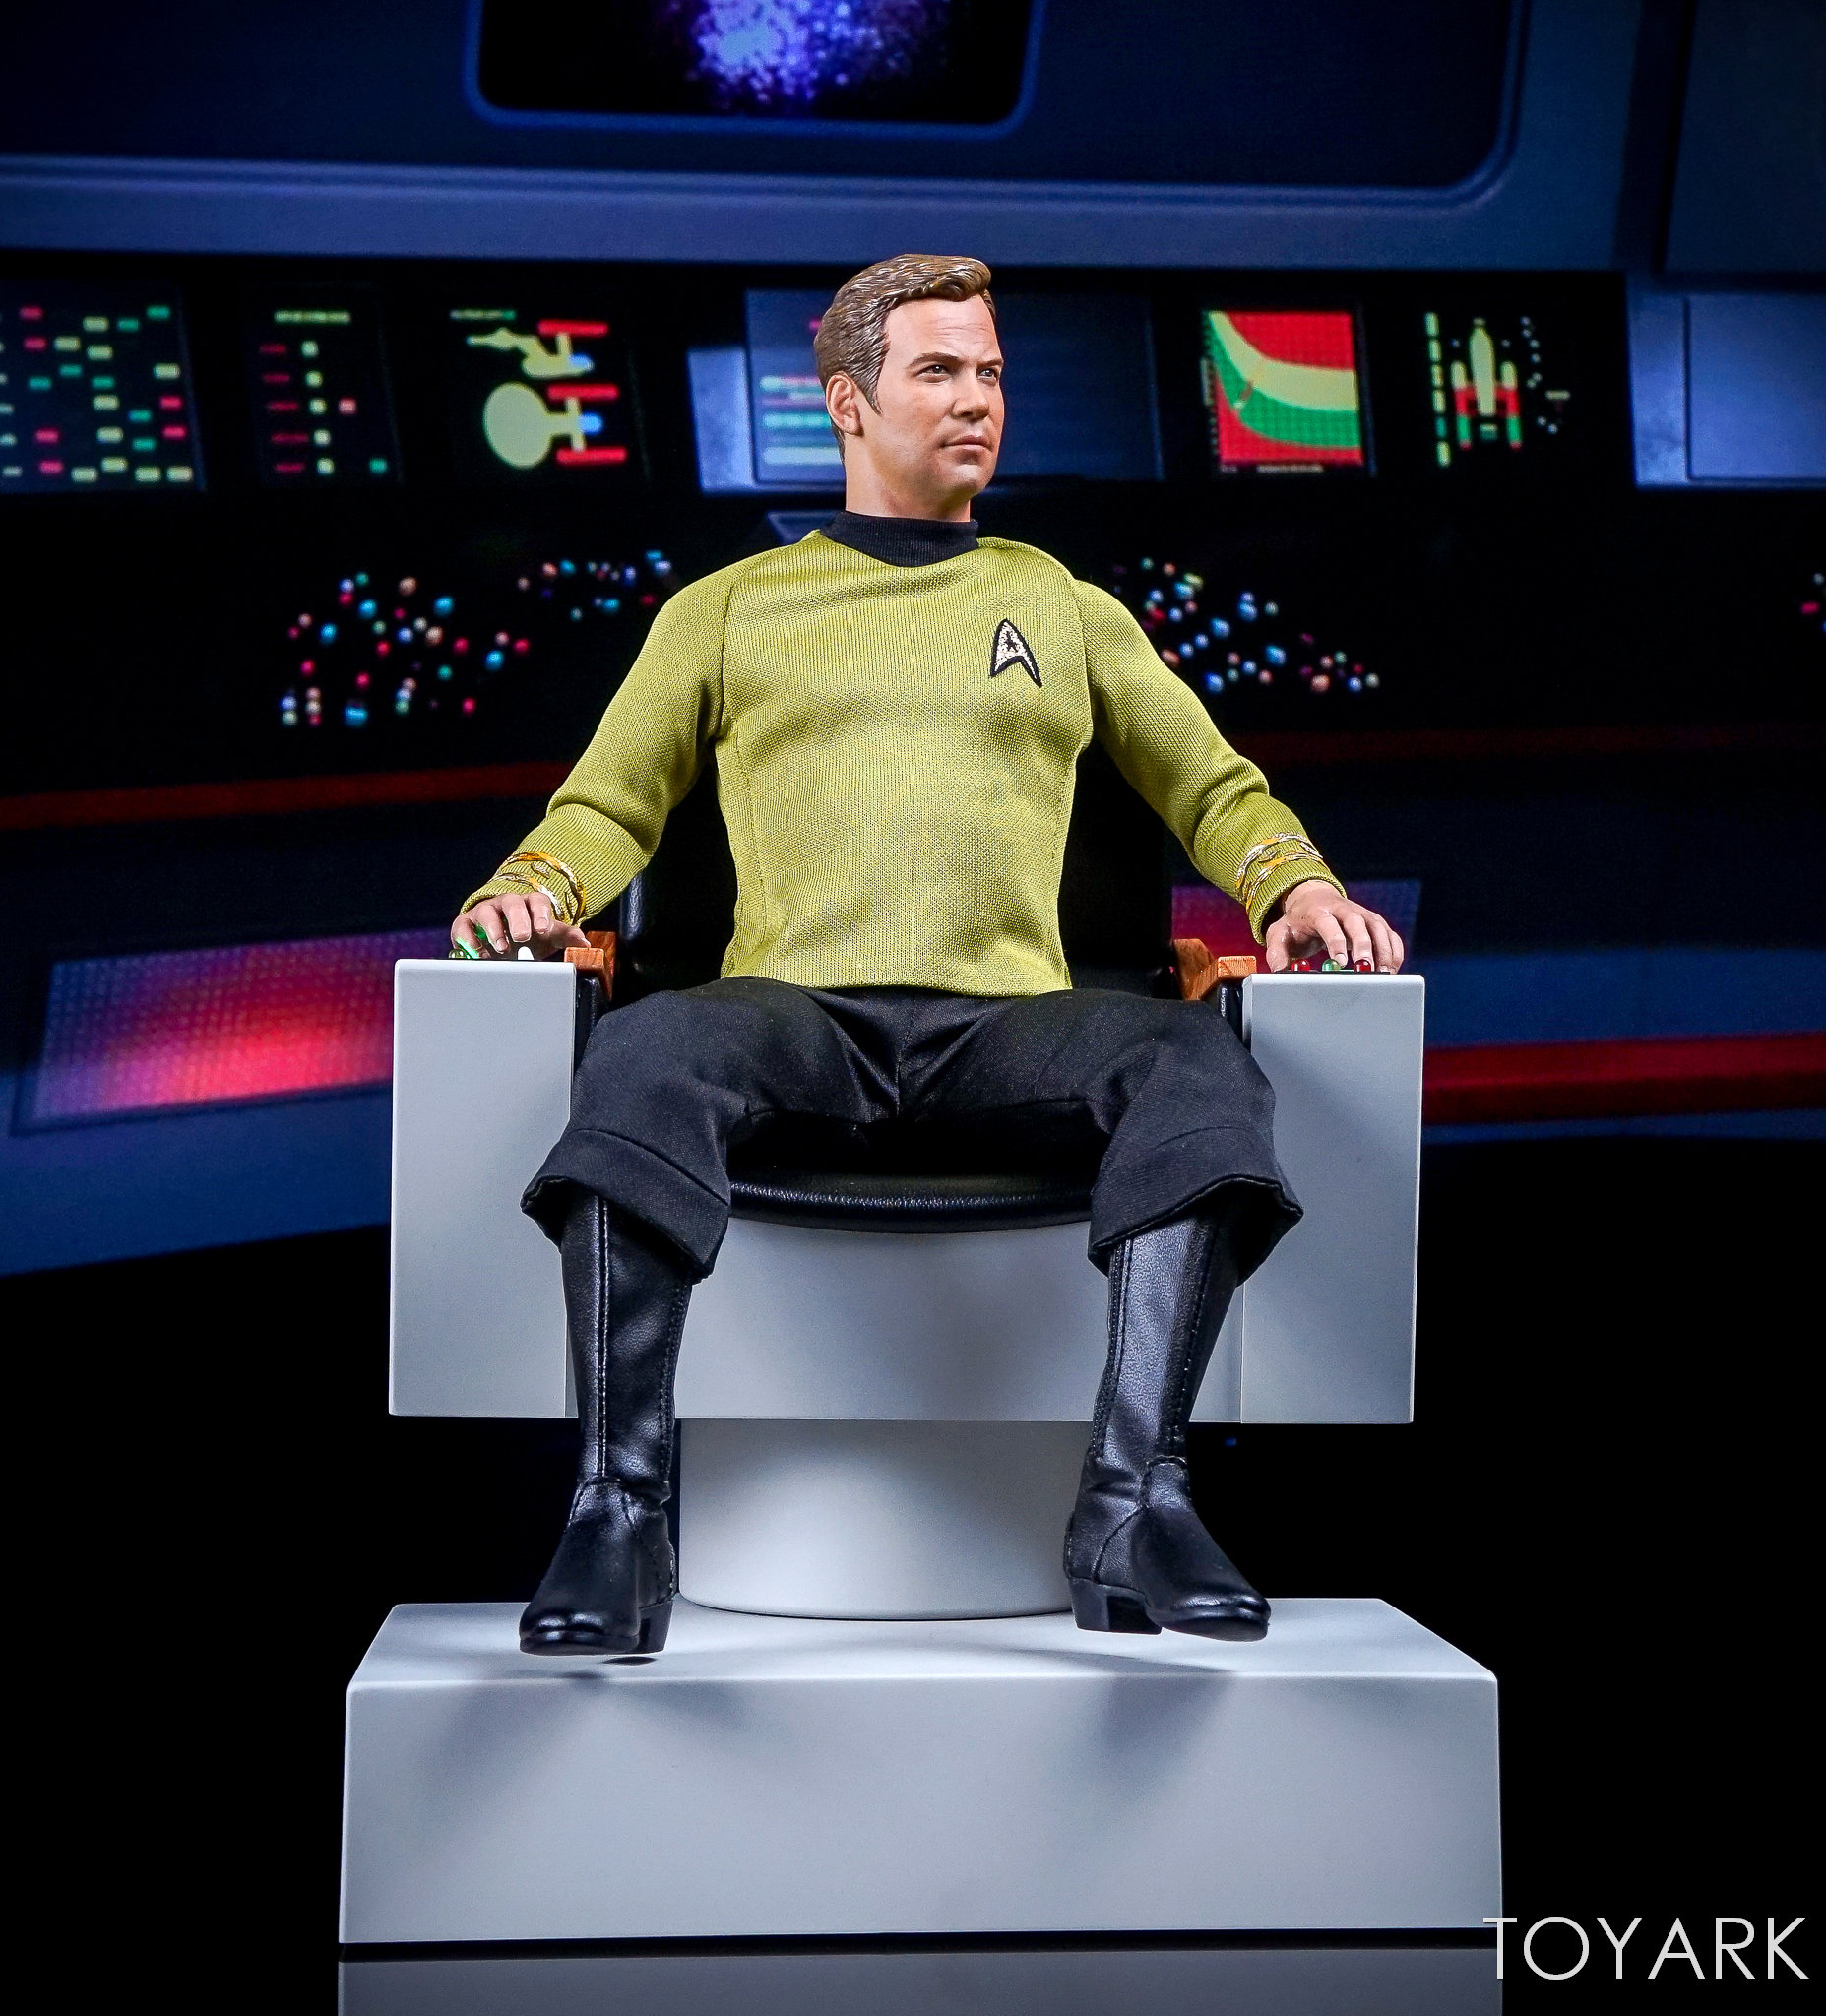 star trek captains chair covers for toddlers qmx the original series 1 6 scale